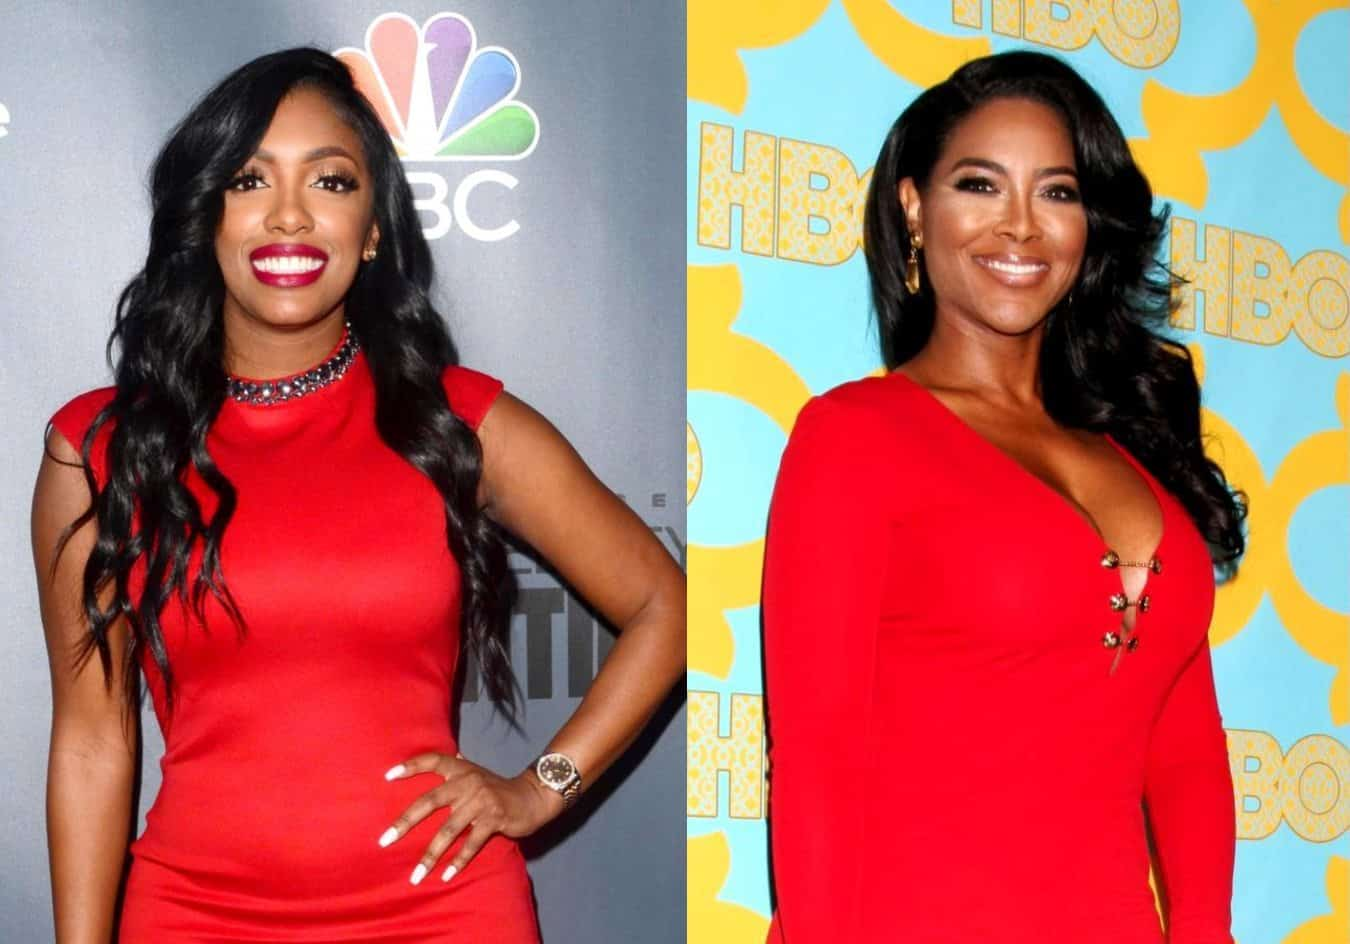 RHOA's Porsha Williams and Kenya Moore Feud Online Over Claim Porsha's Activism is For a Storyline as Kenya Claps Back, Plus Porsha Shuts Down Rumor Claiming She Twerked at a Protest